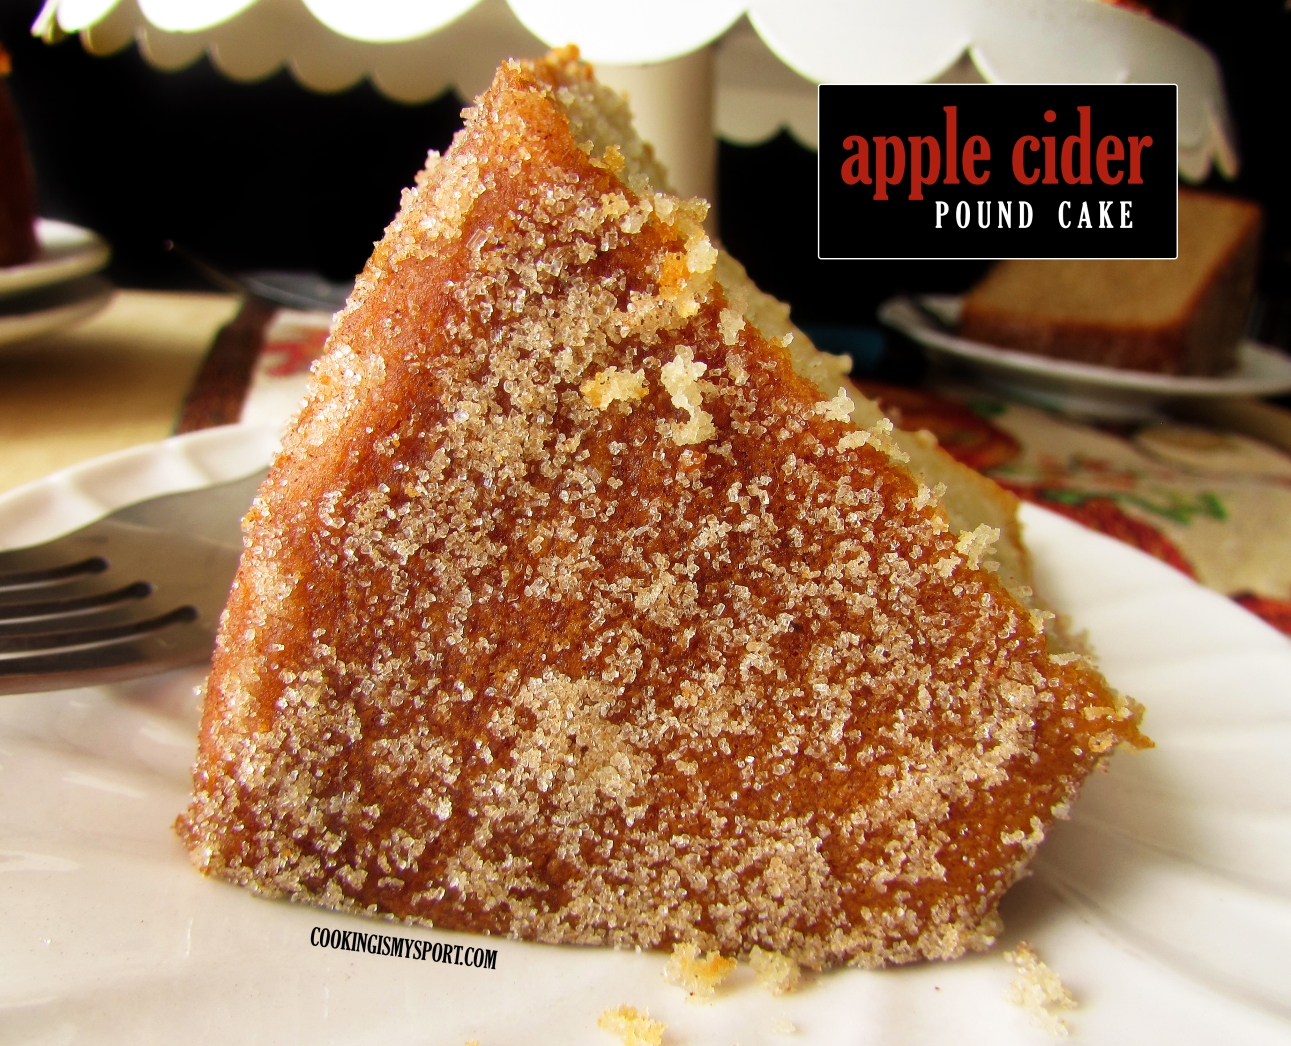 Stupendous Apple Cider Pound Cake Cooking Is My Sport Birthday Cards Printable Giouspongecafe Filternl